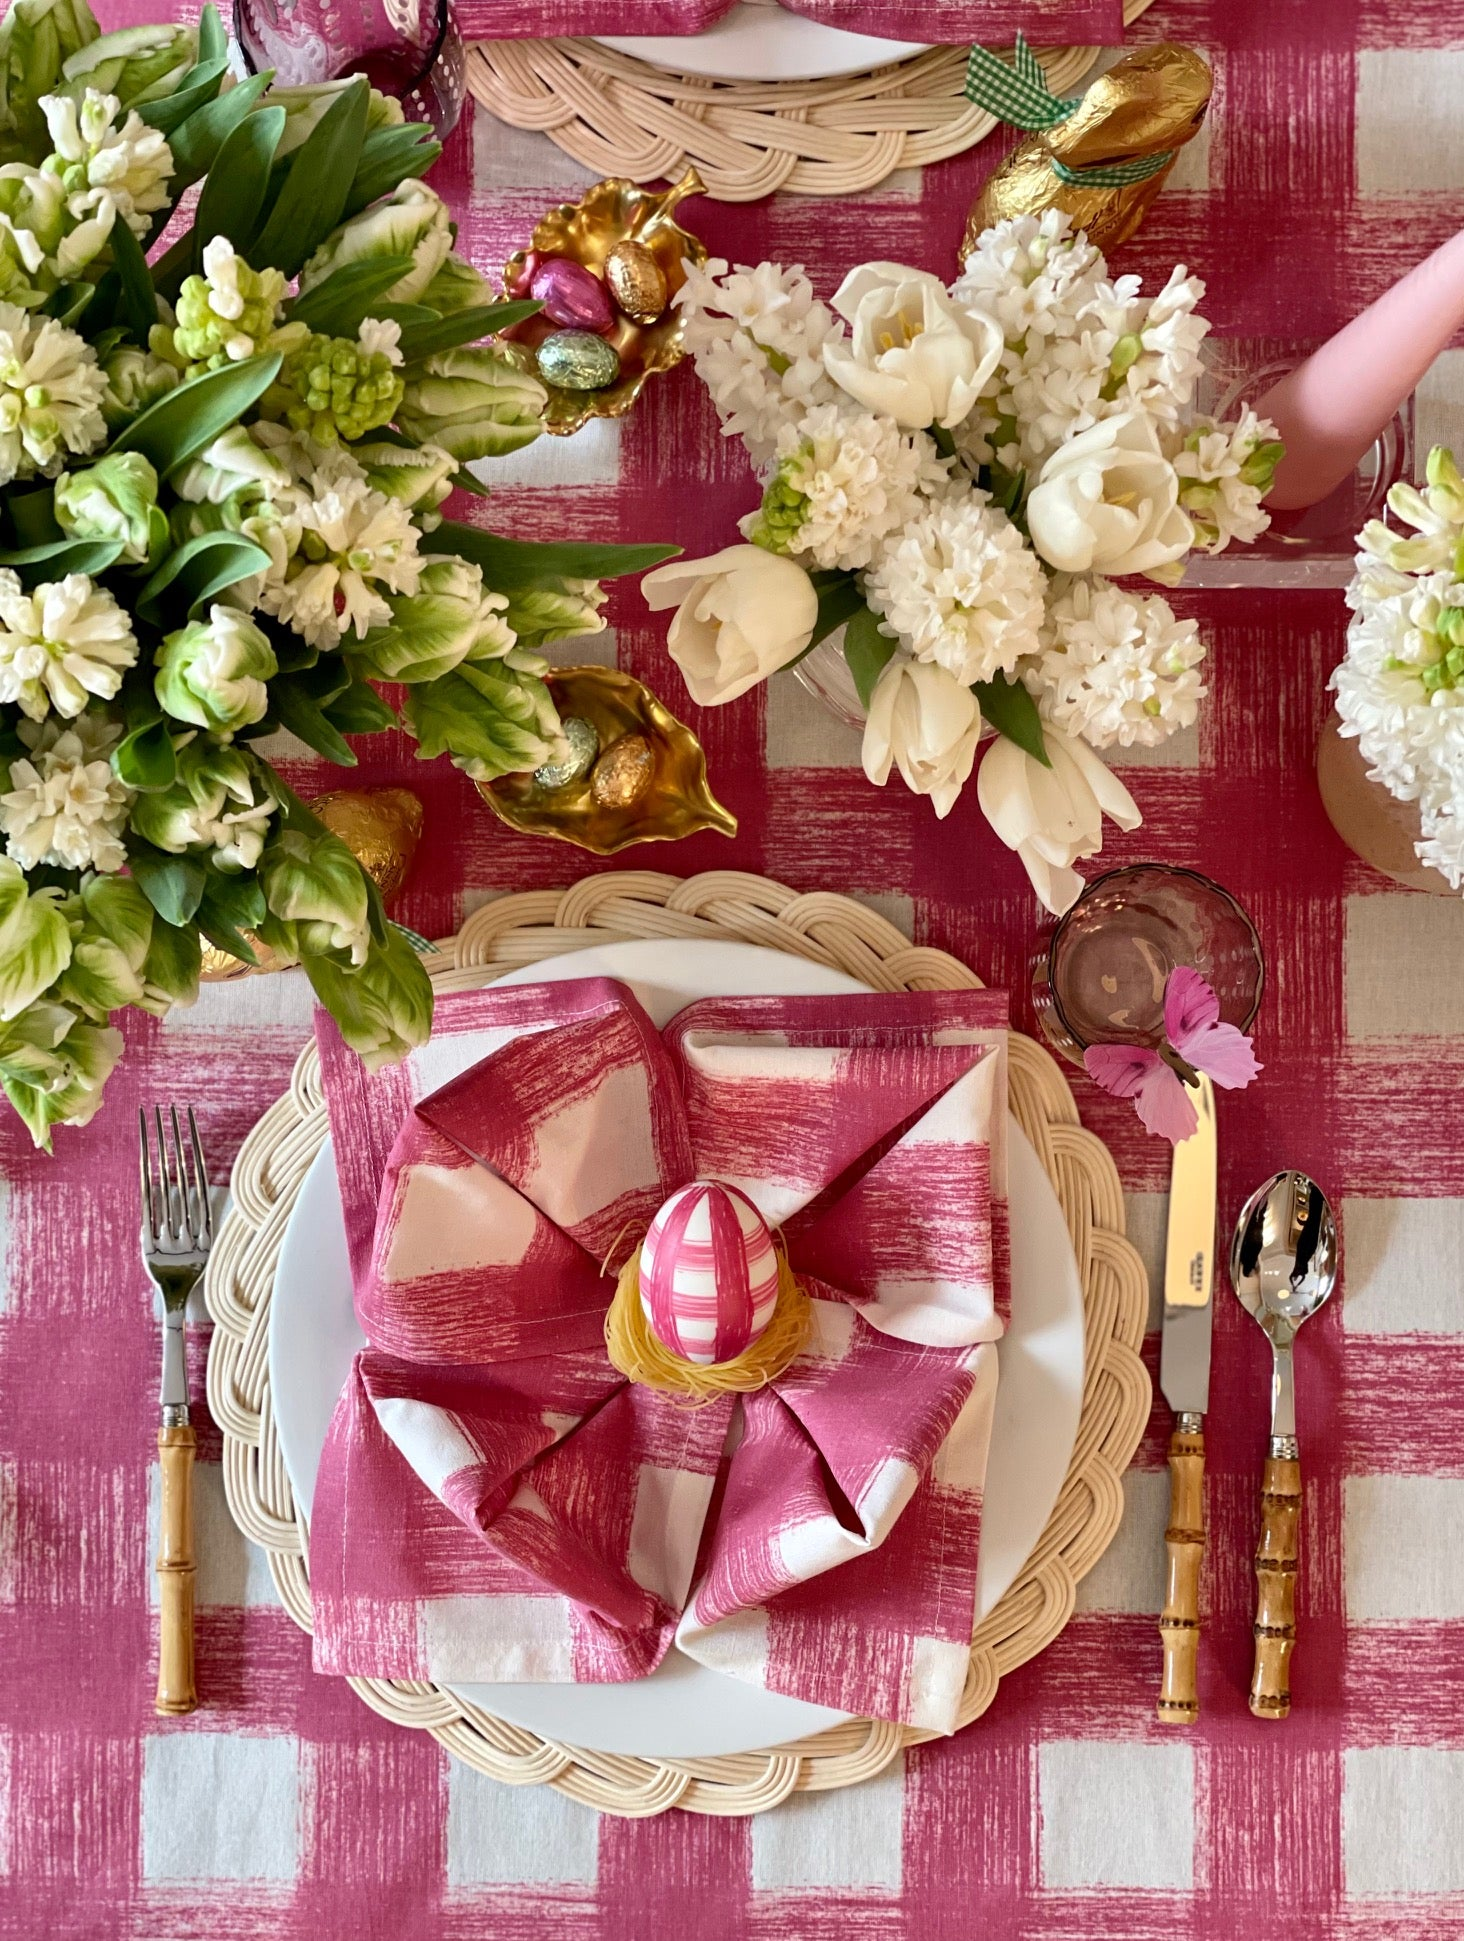 Setting Pretty- Easter Table